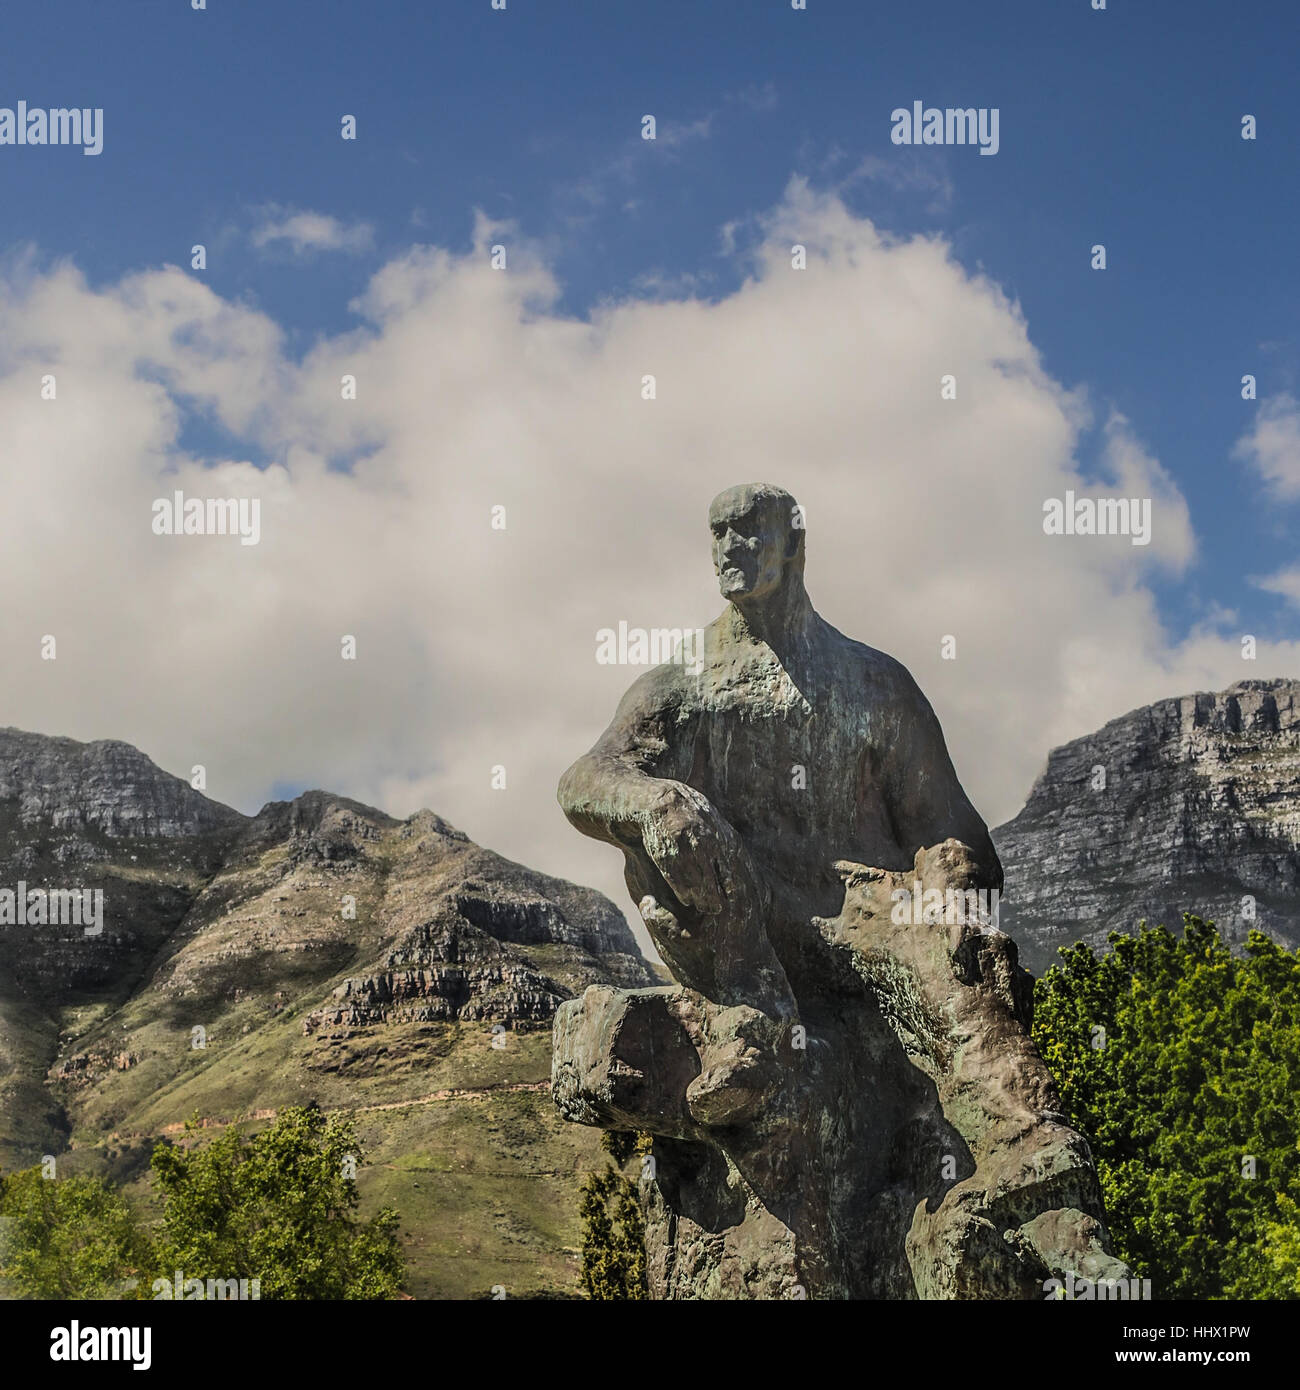 monument, art, statue, sculpture, south africa, mountain, cape town, monument, - Stock Image